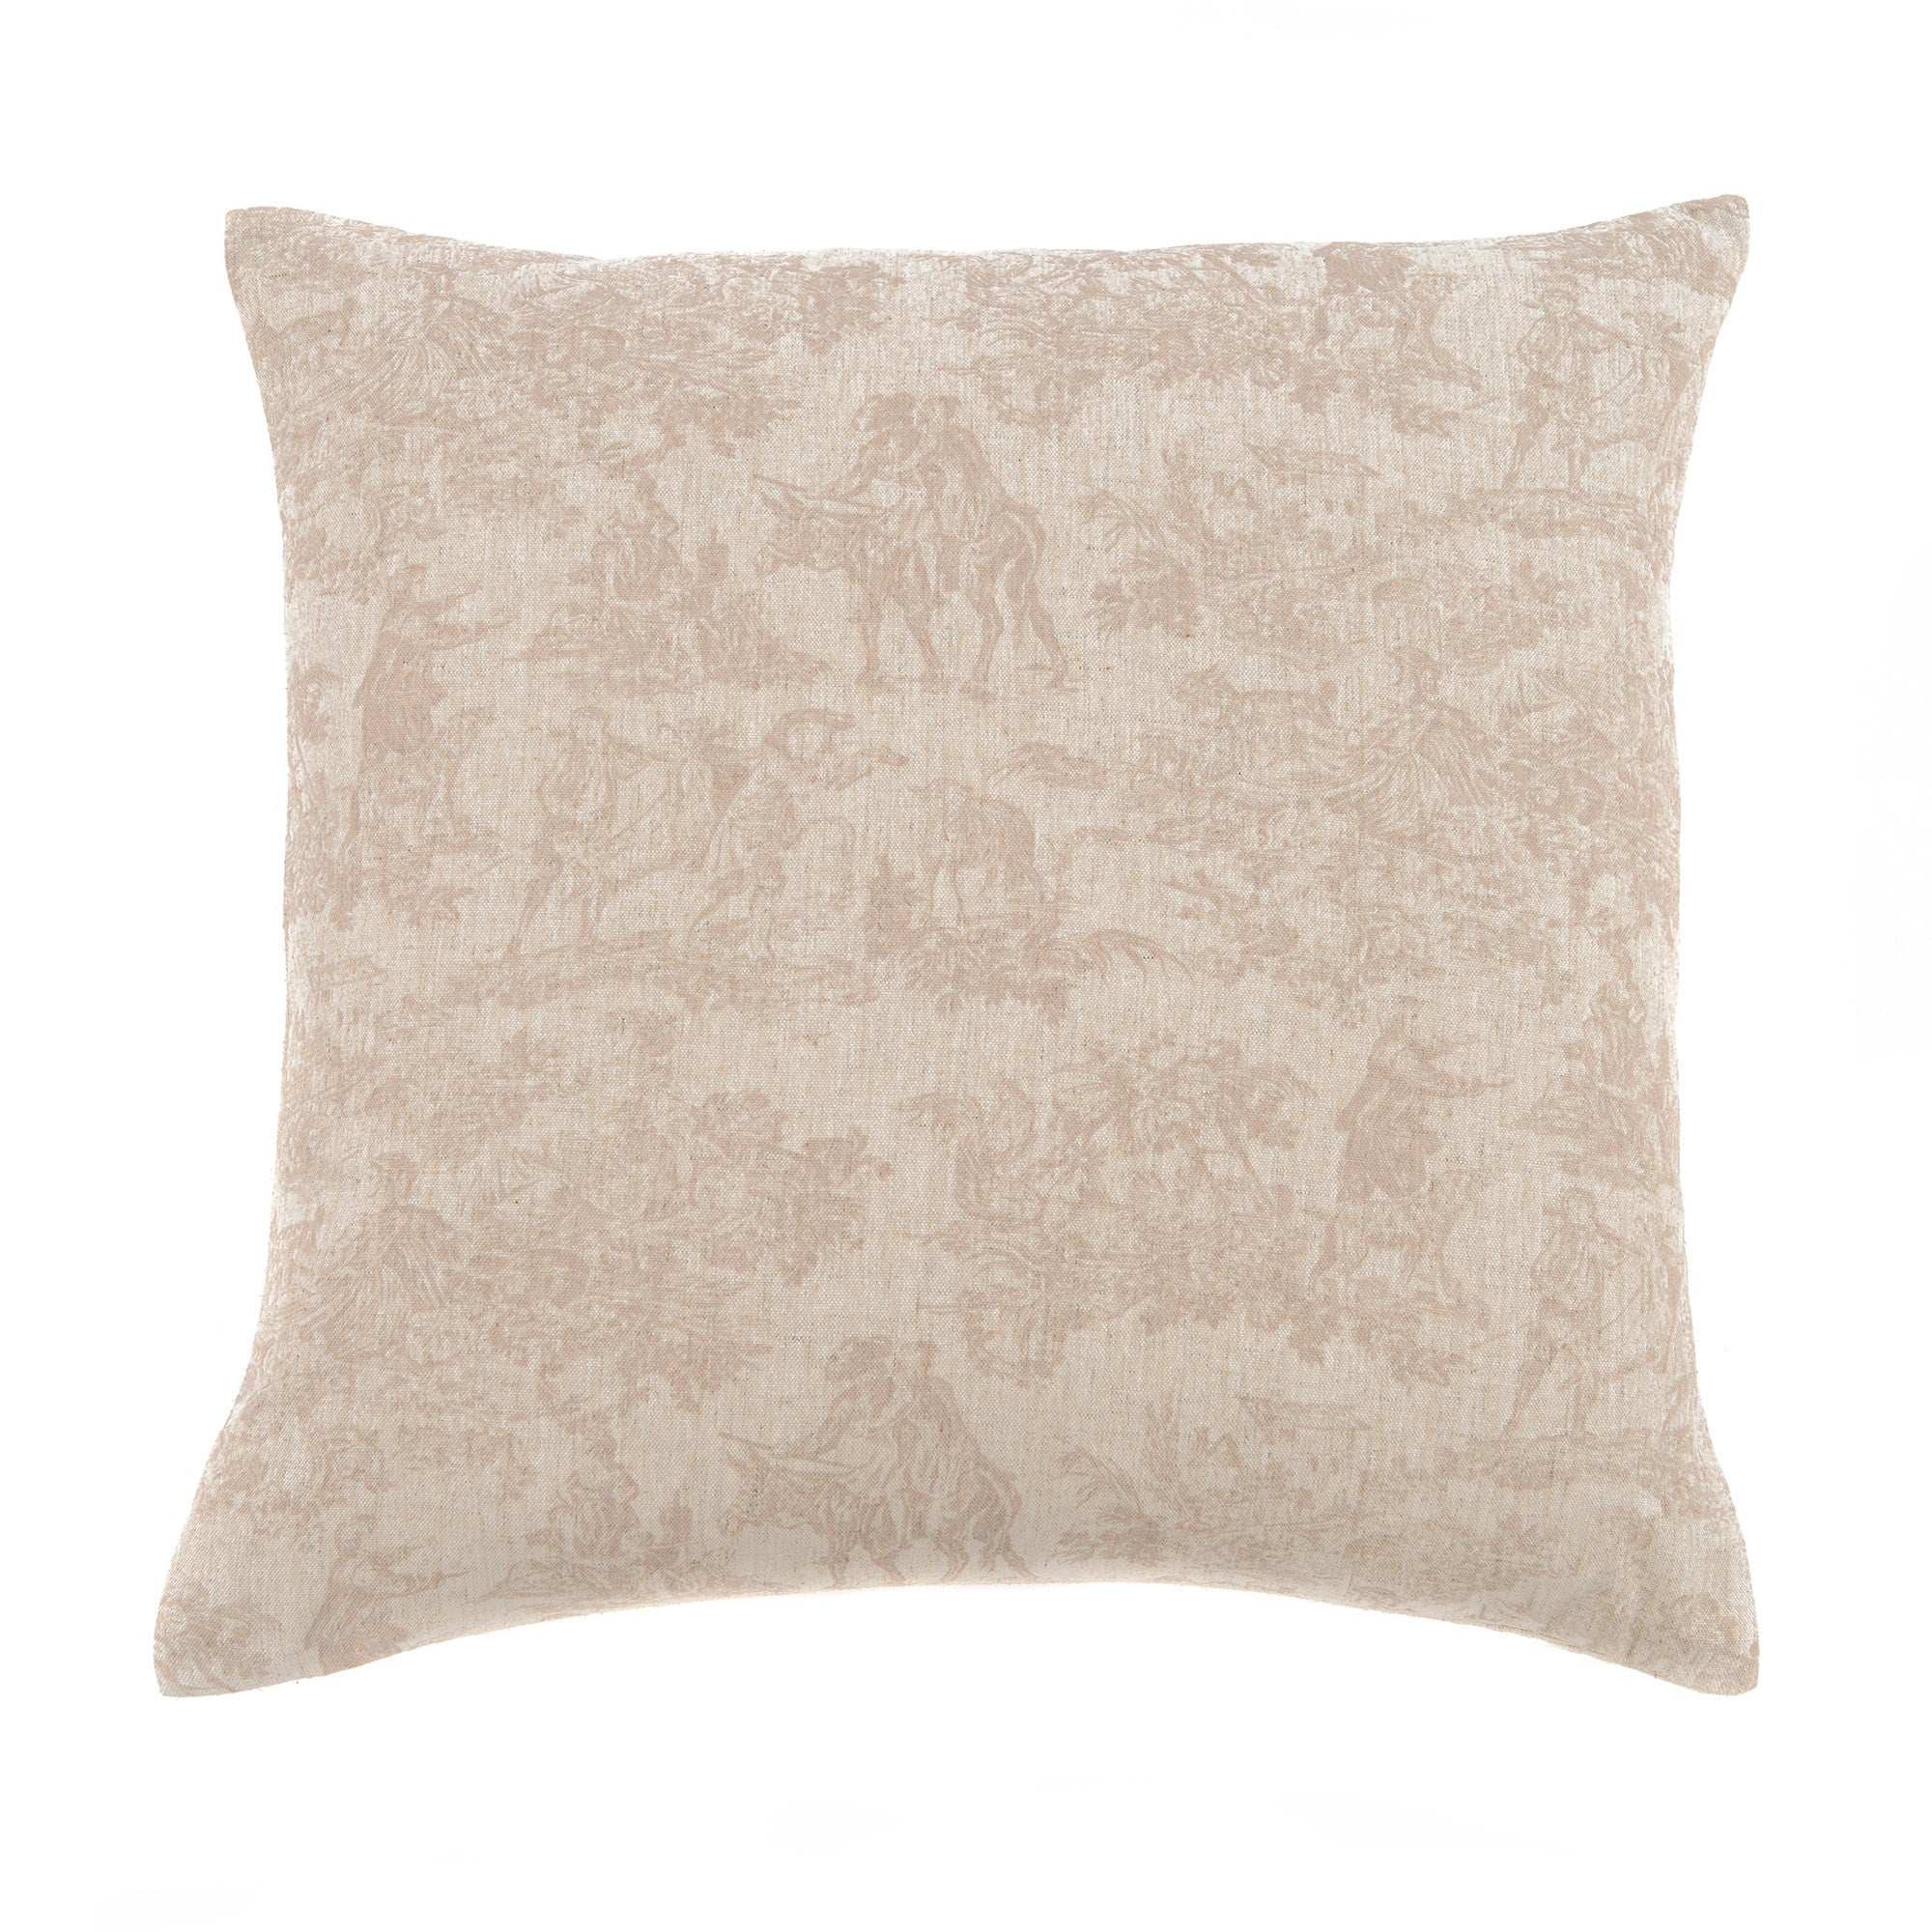 Photo of Natural rustic toile cushion natural